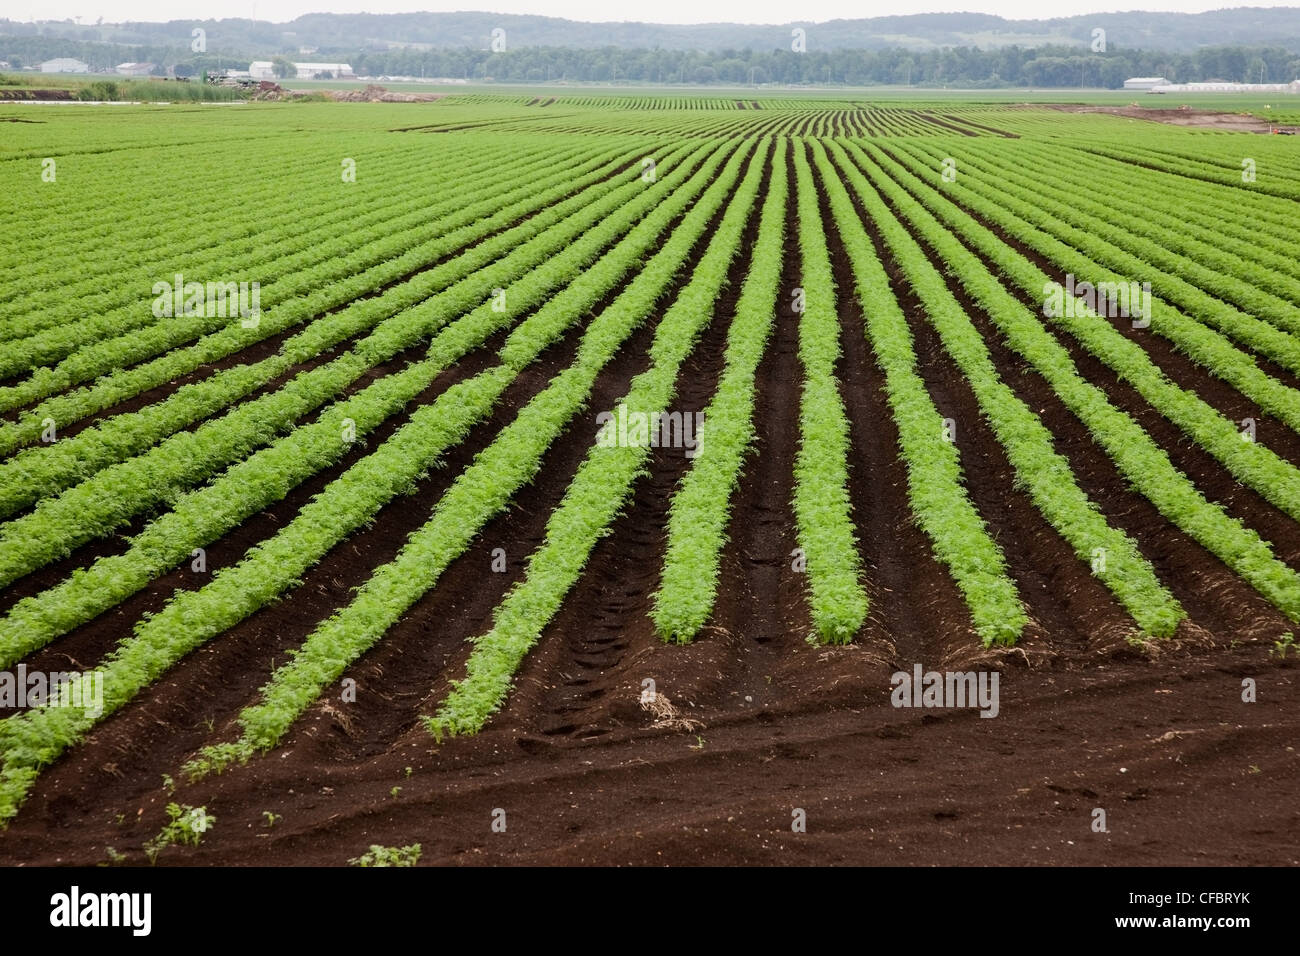 crop carrots growing organic muck soil Holland - Stock Image